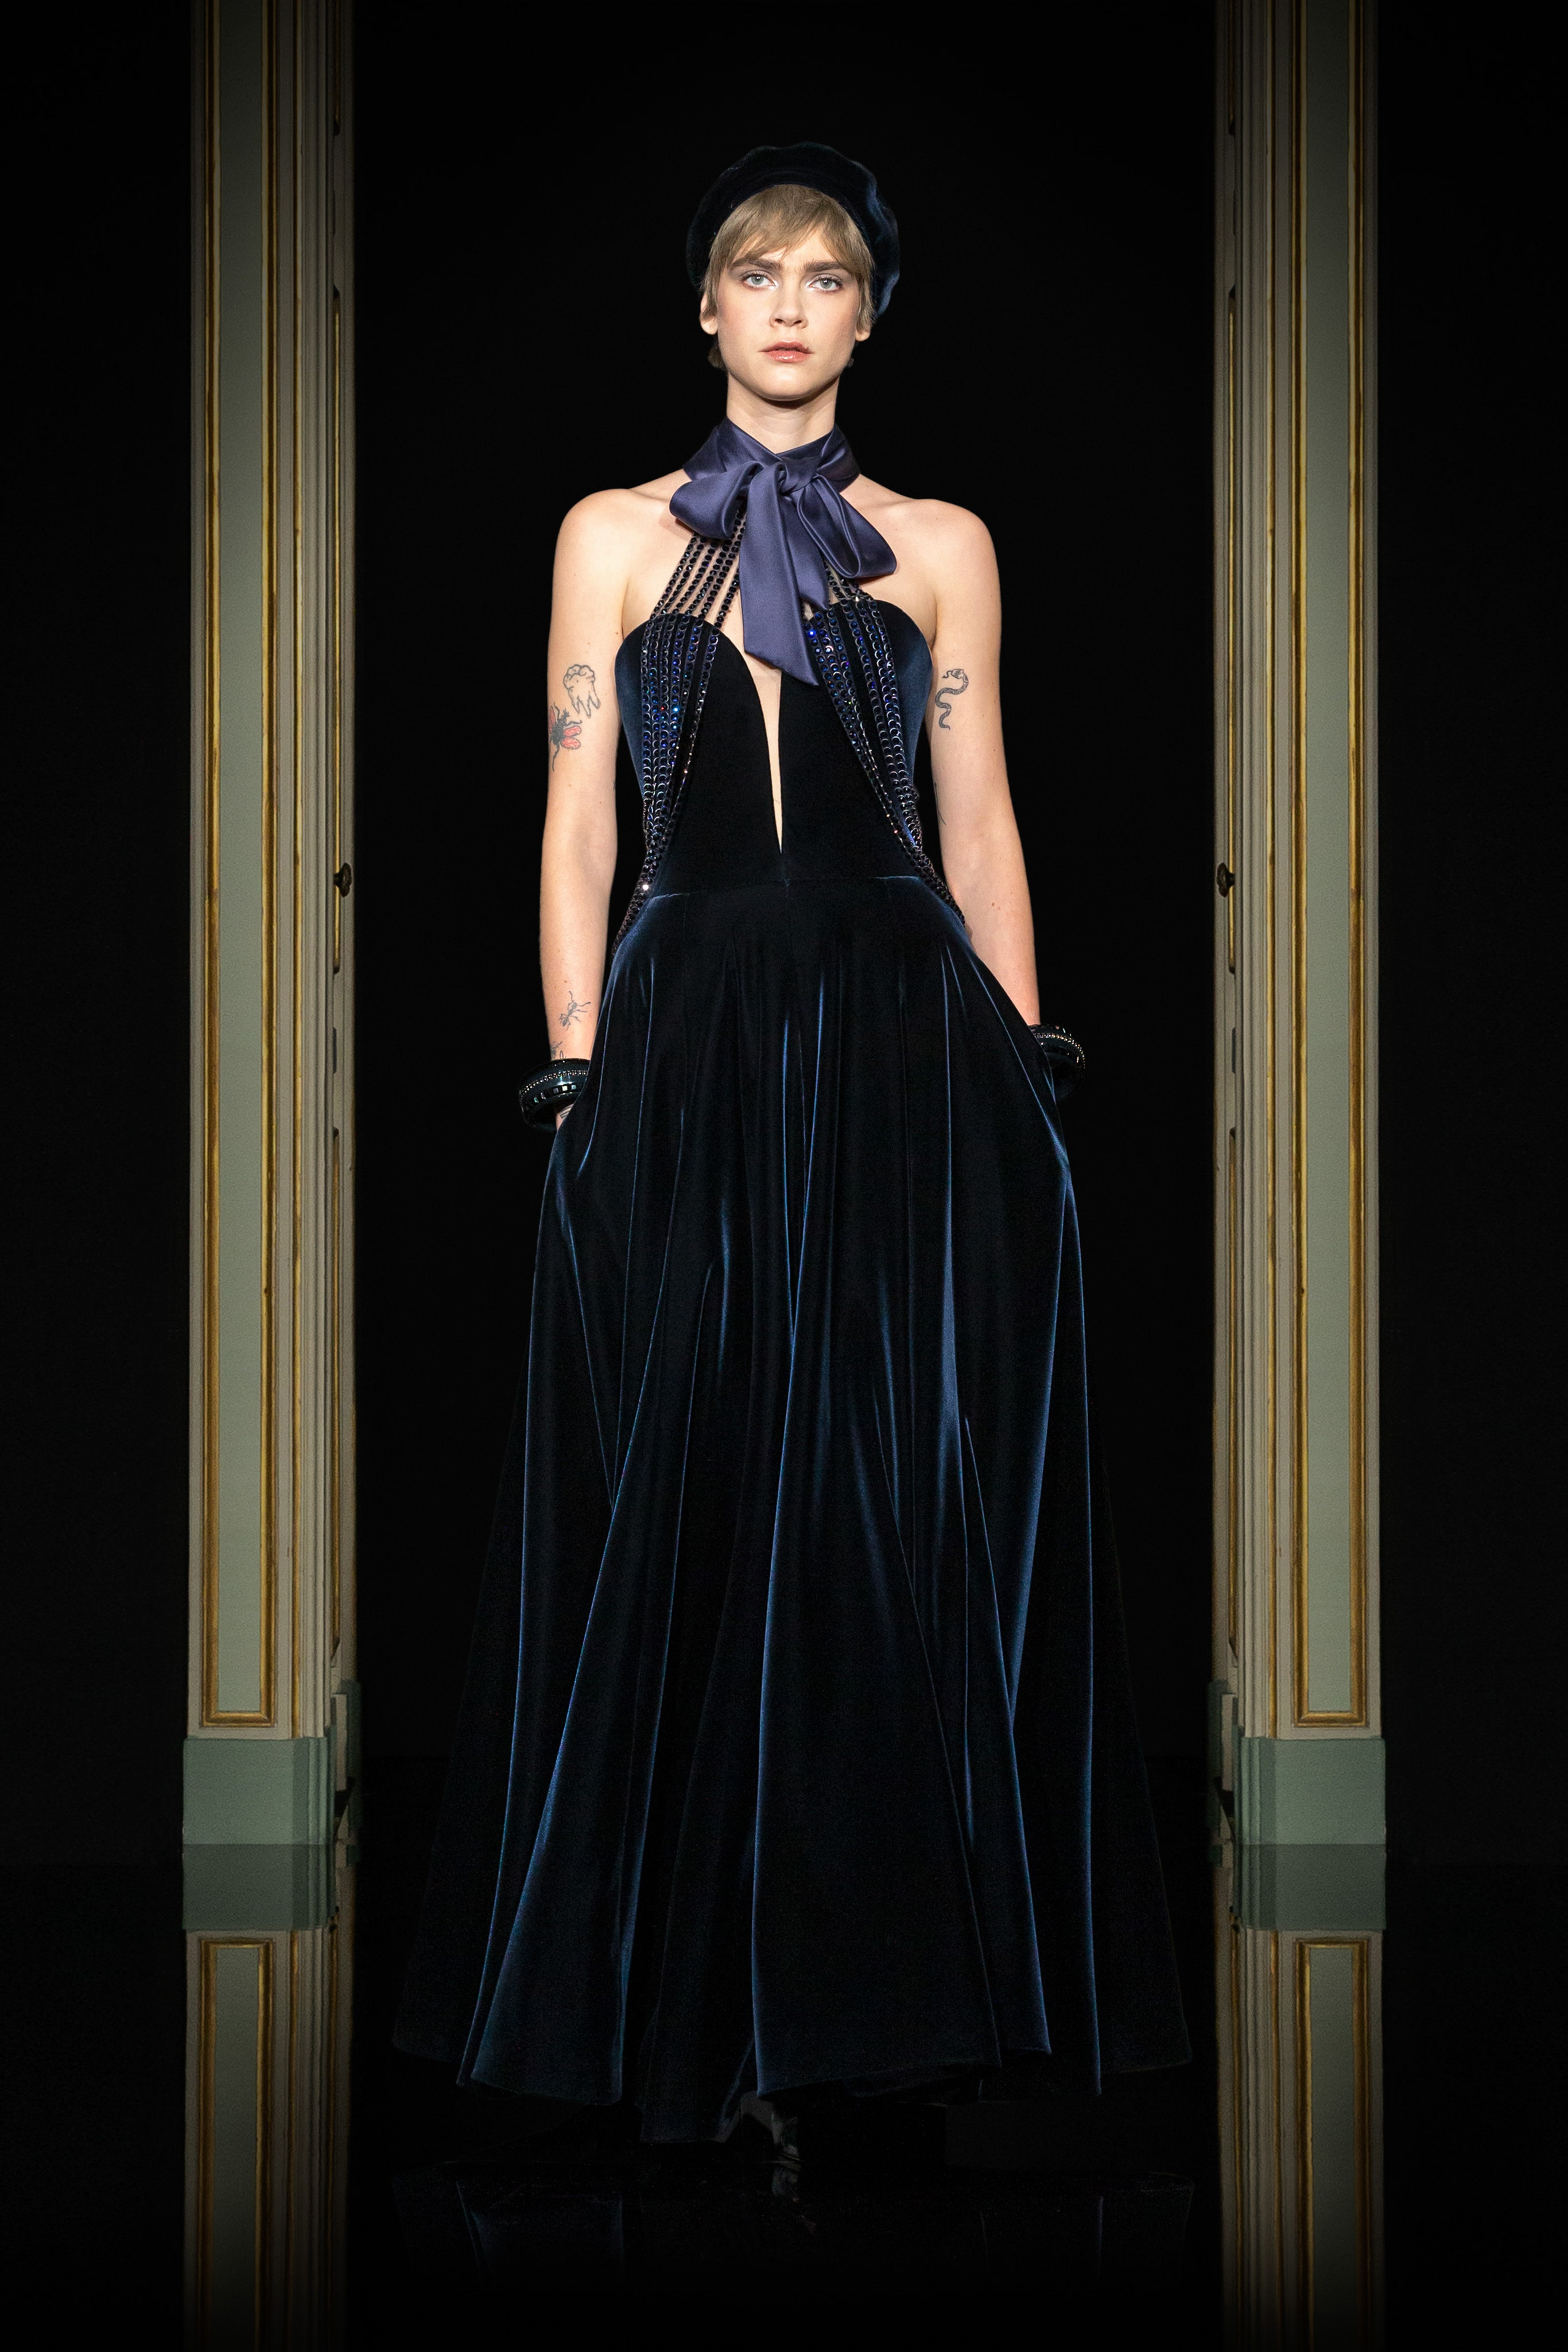 Armani Privé Spring 2021 Couture. A lady wearing a midnight blue velvet dress.